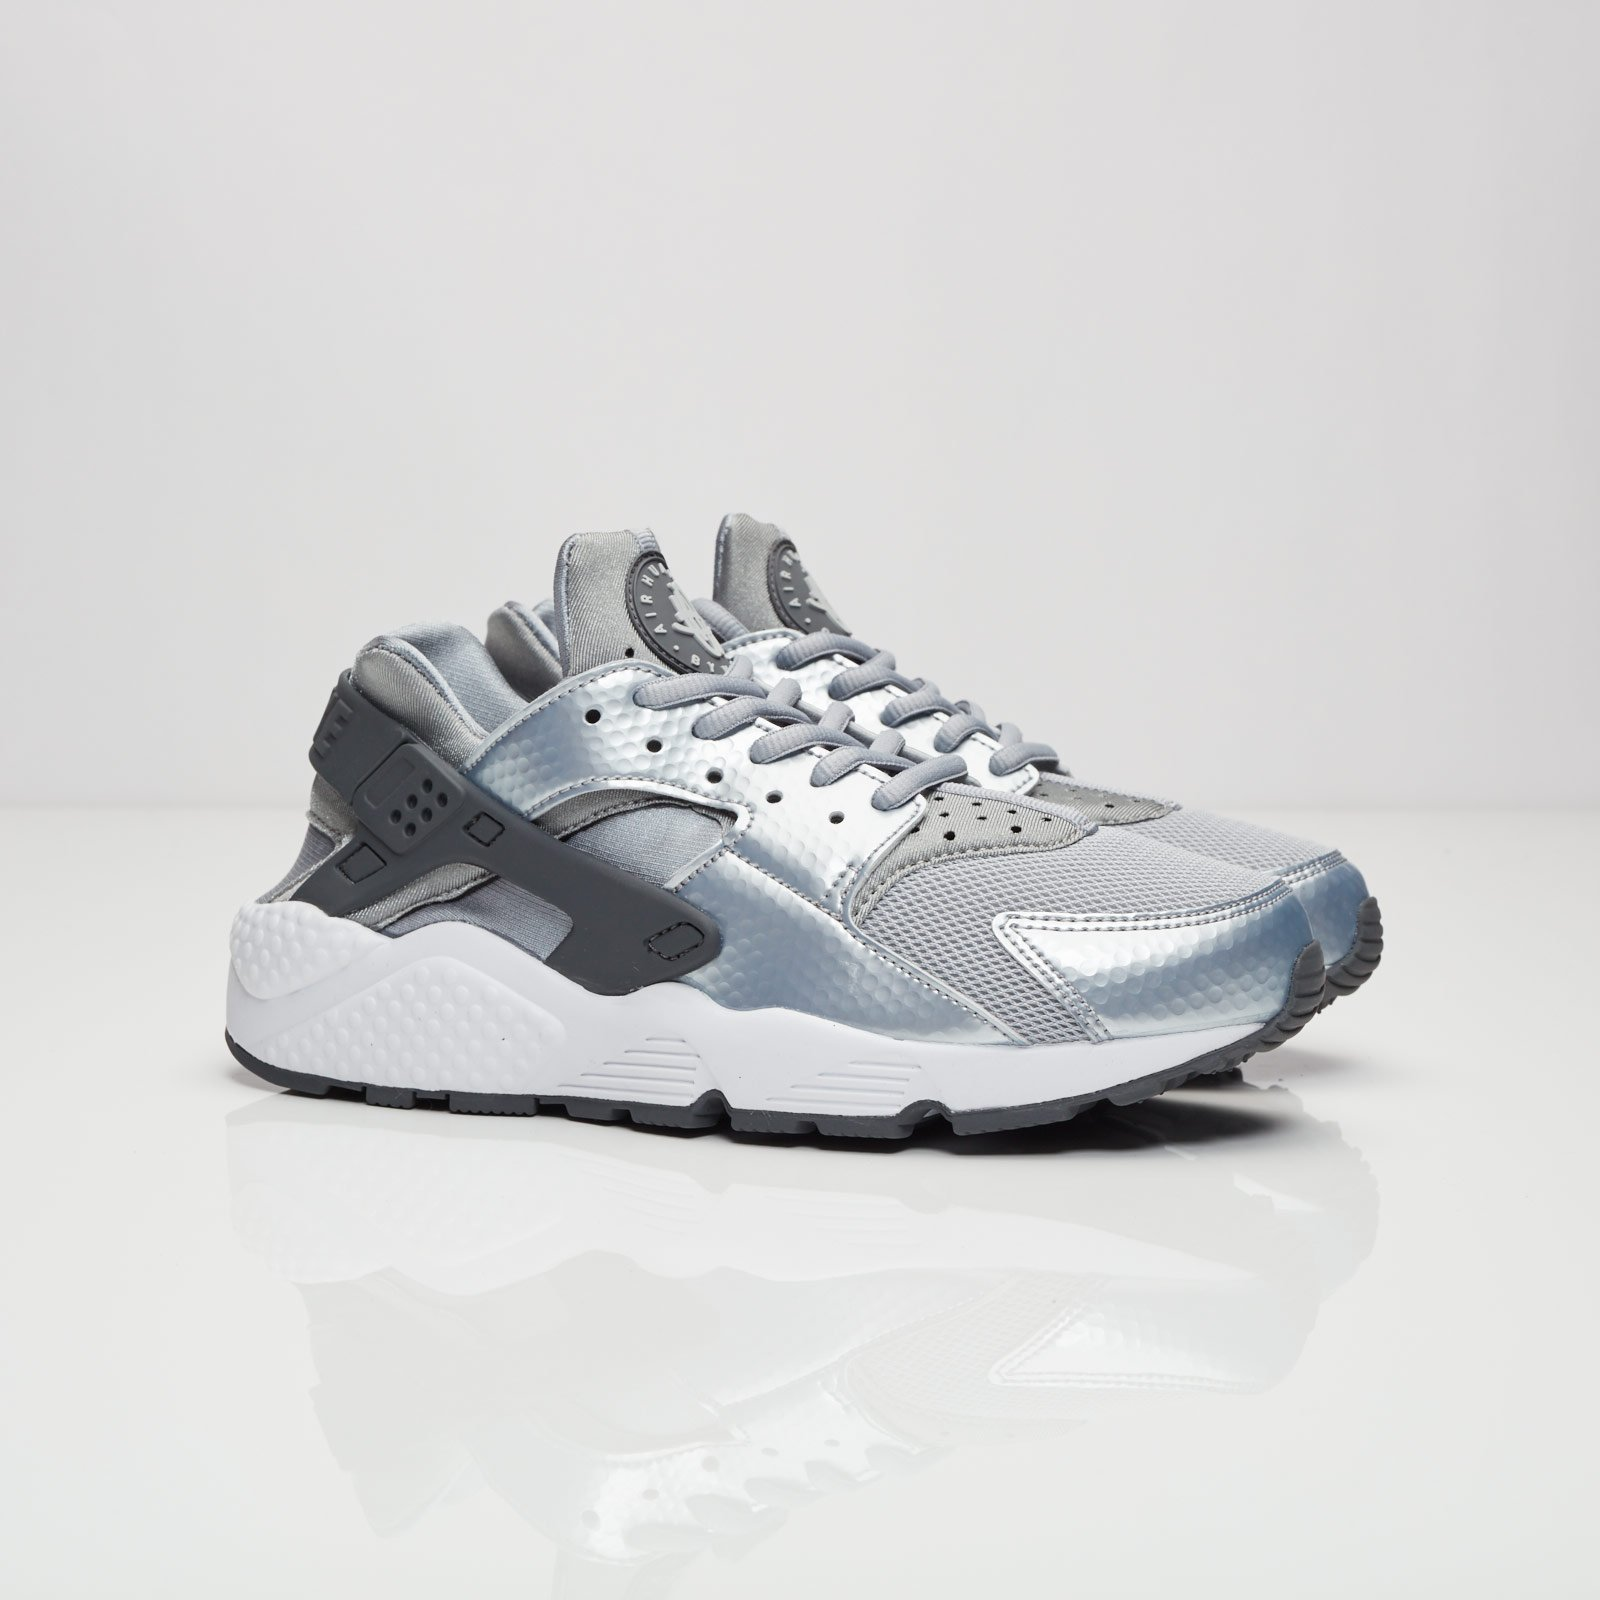 032e91d5537f coupon nike air huarache wolf grey white discharge d6e86 74aa5